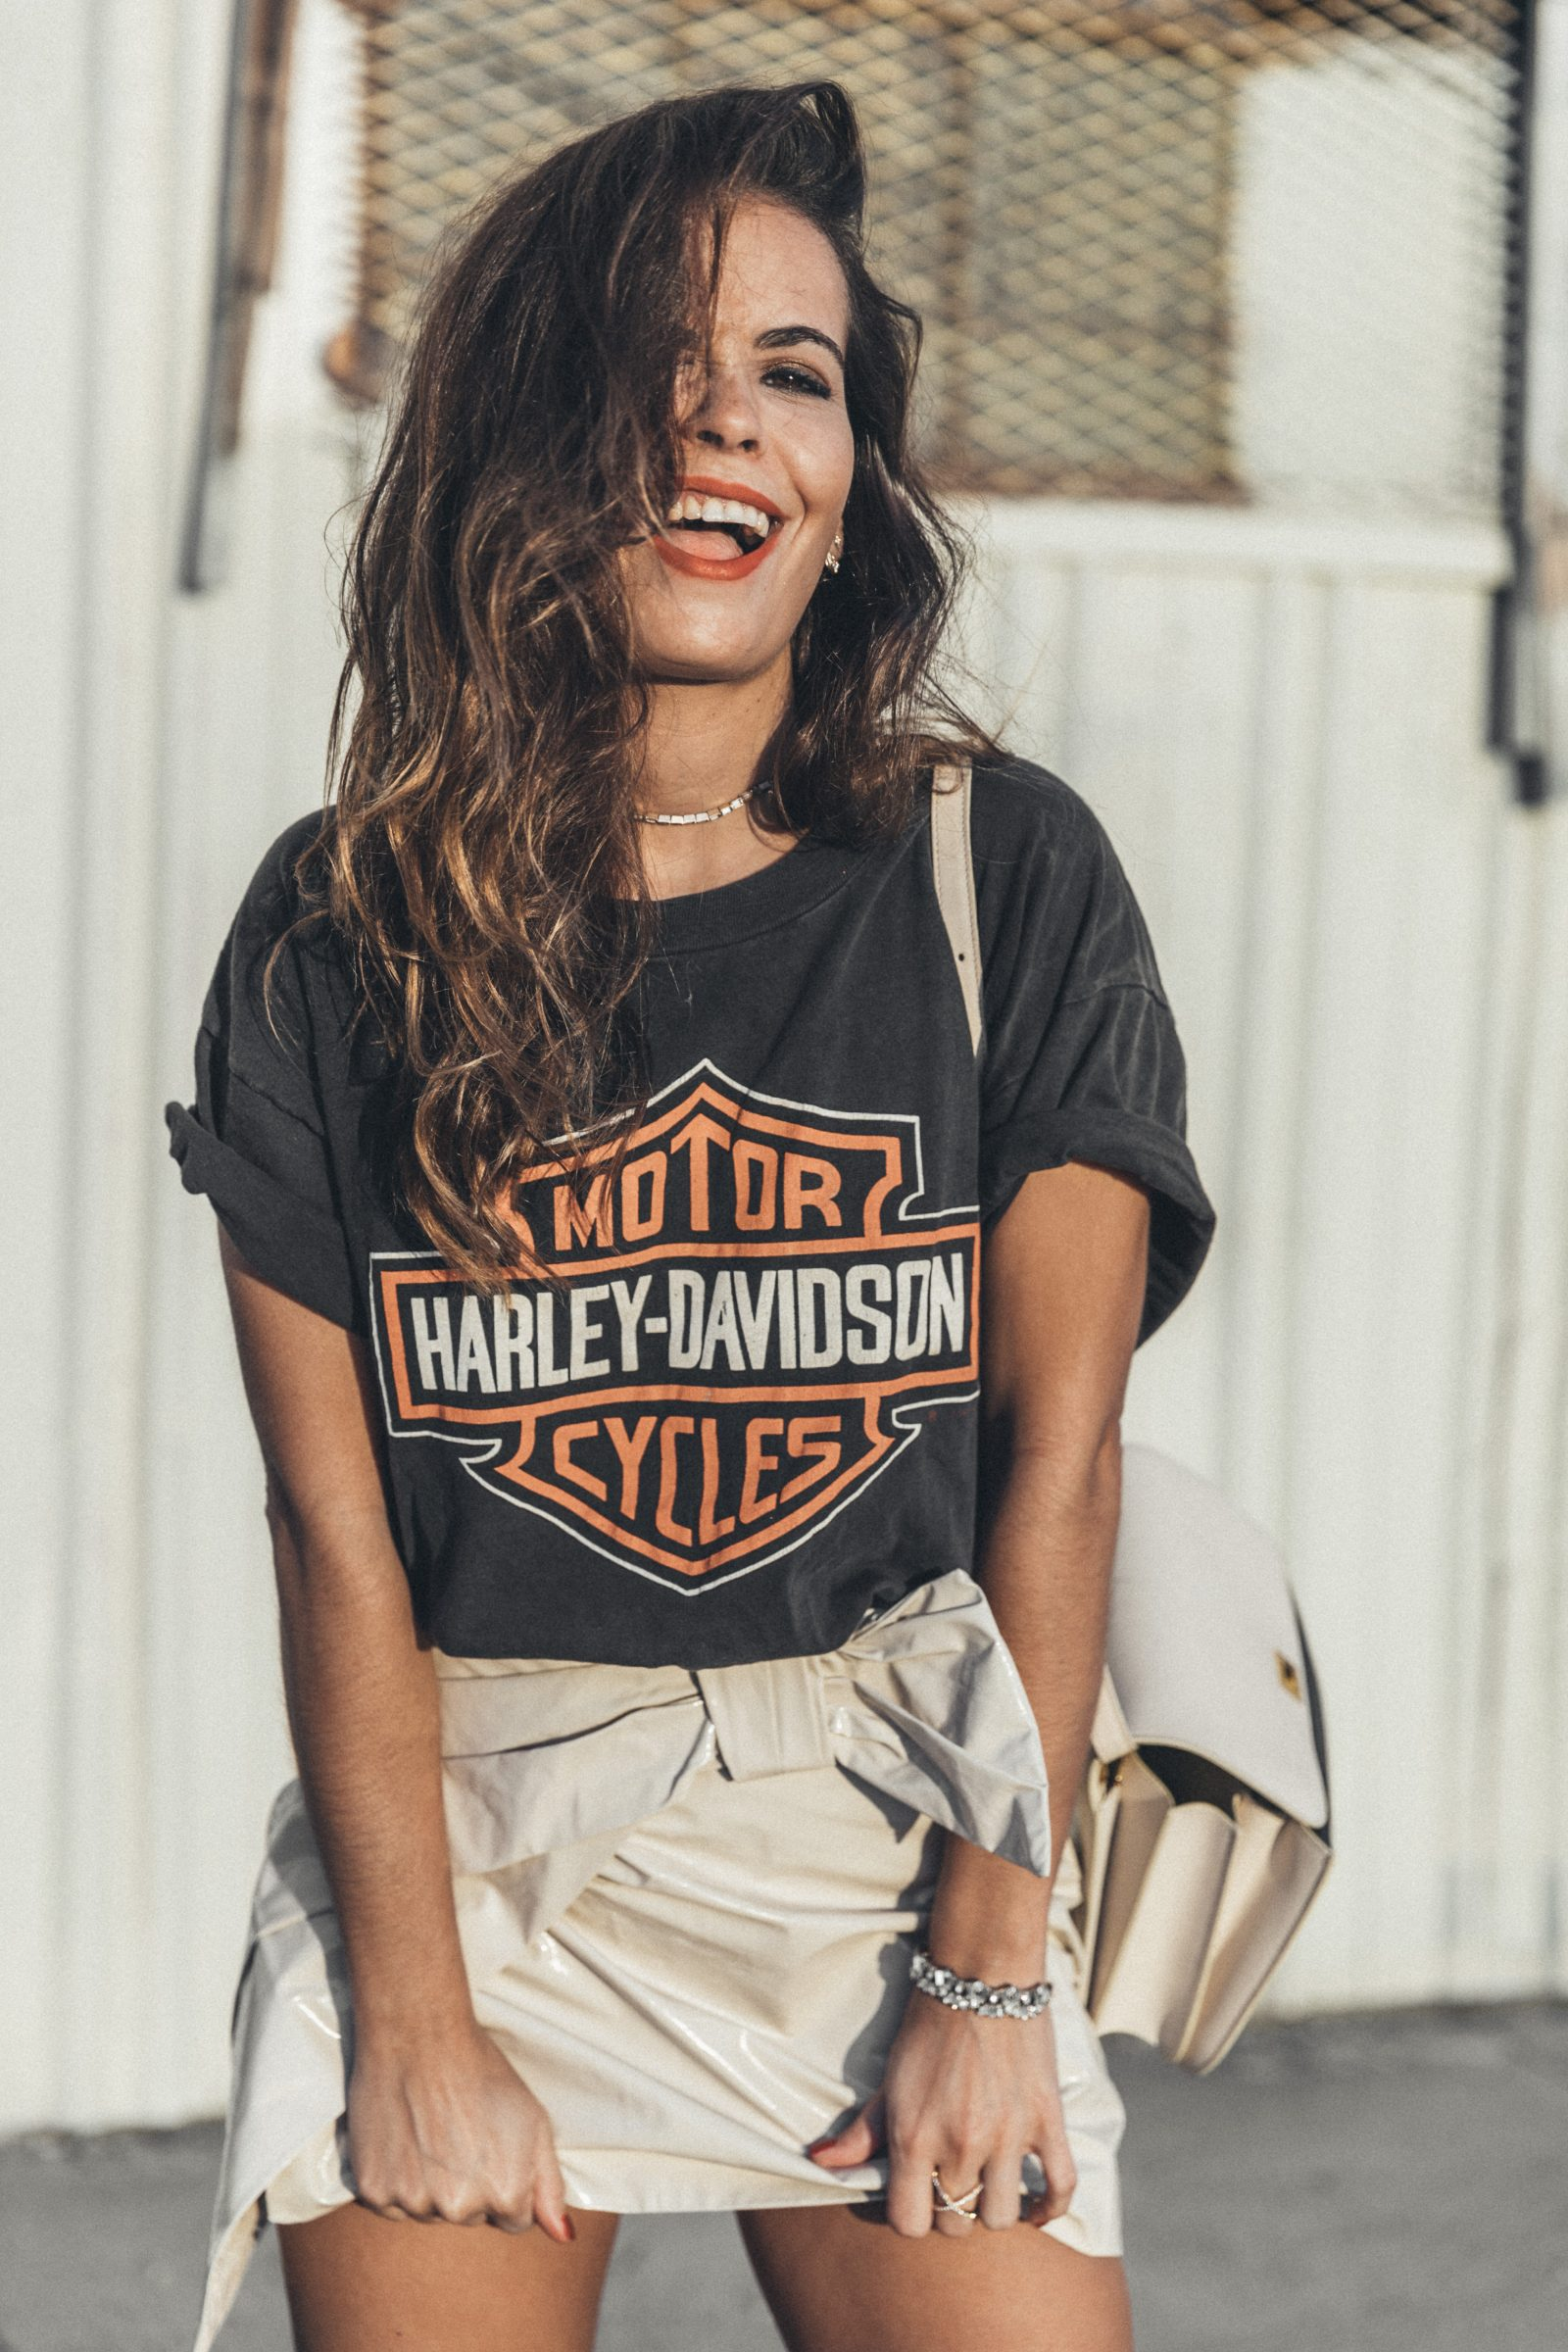 isabel_marant_skirt-harley_davison_vintage_tee-snake_boots-red_boots-bauble_bar-outifit-street_style-outfits-collage_vintage-101